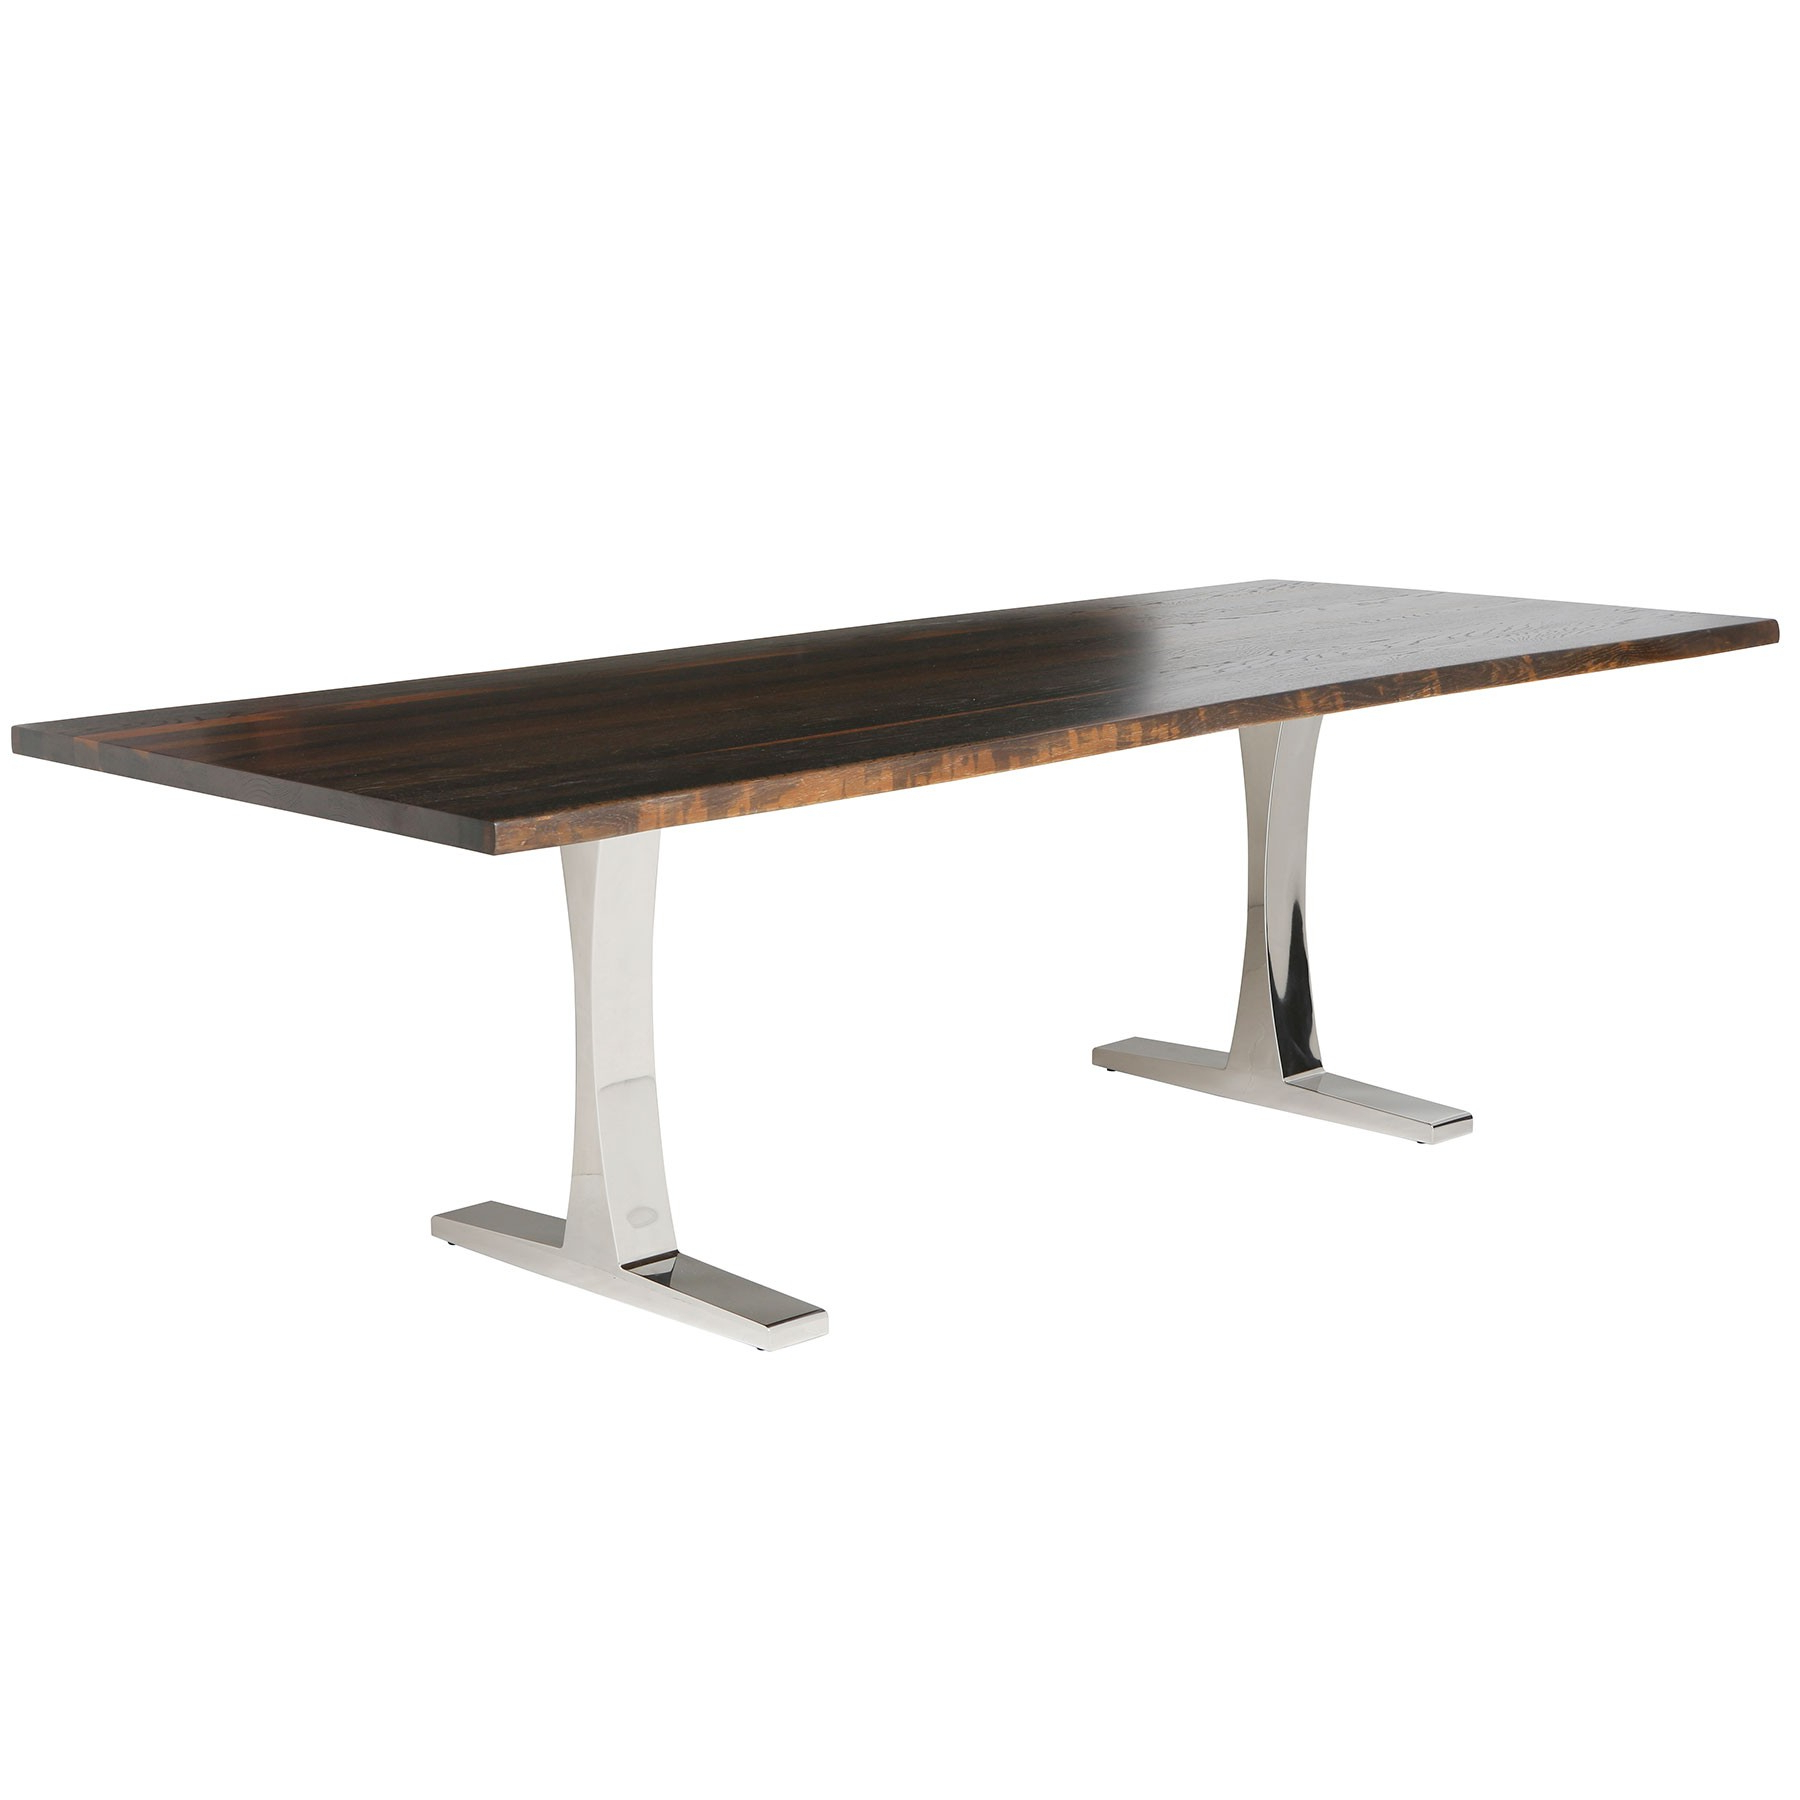 Well Liked Toulouse Dining Table – Seared Oak / Stainless Inside Dining Tables In Seared Oak With Brass Detail (View 26 of 30)